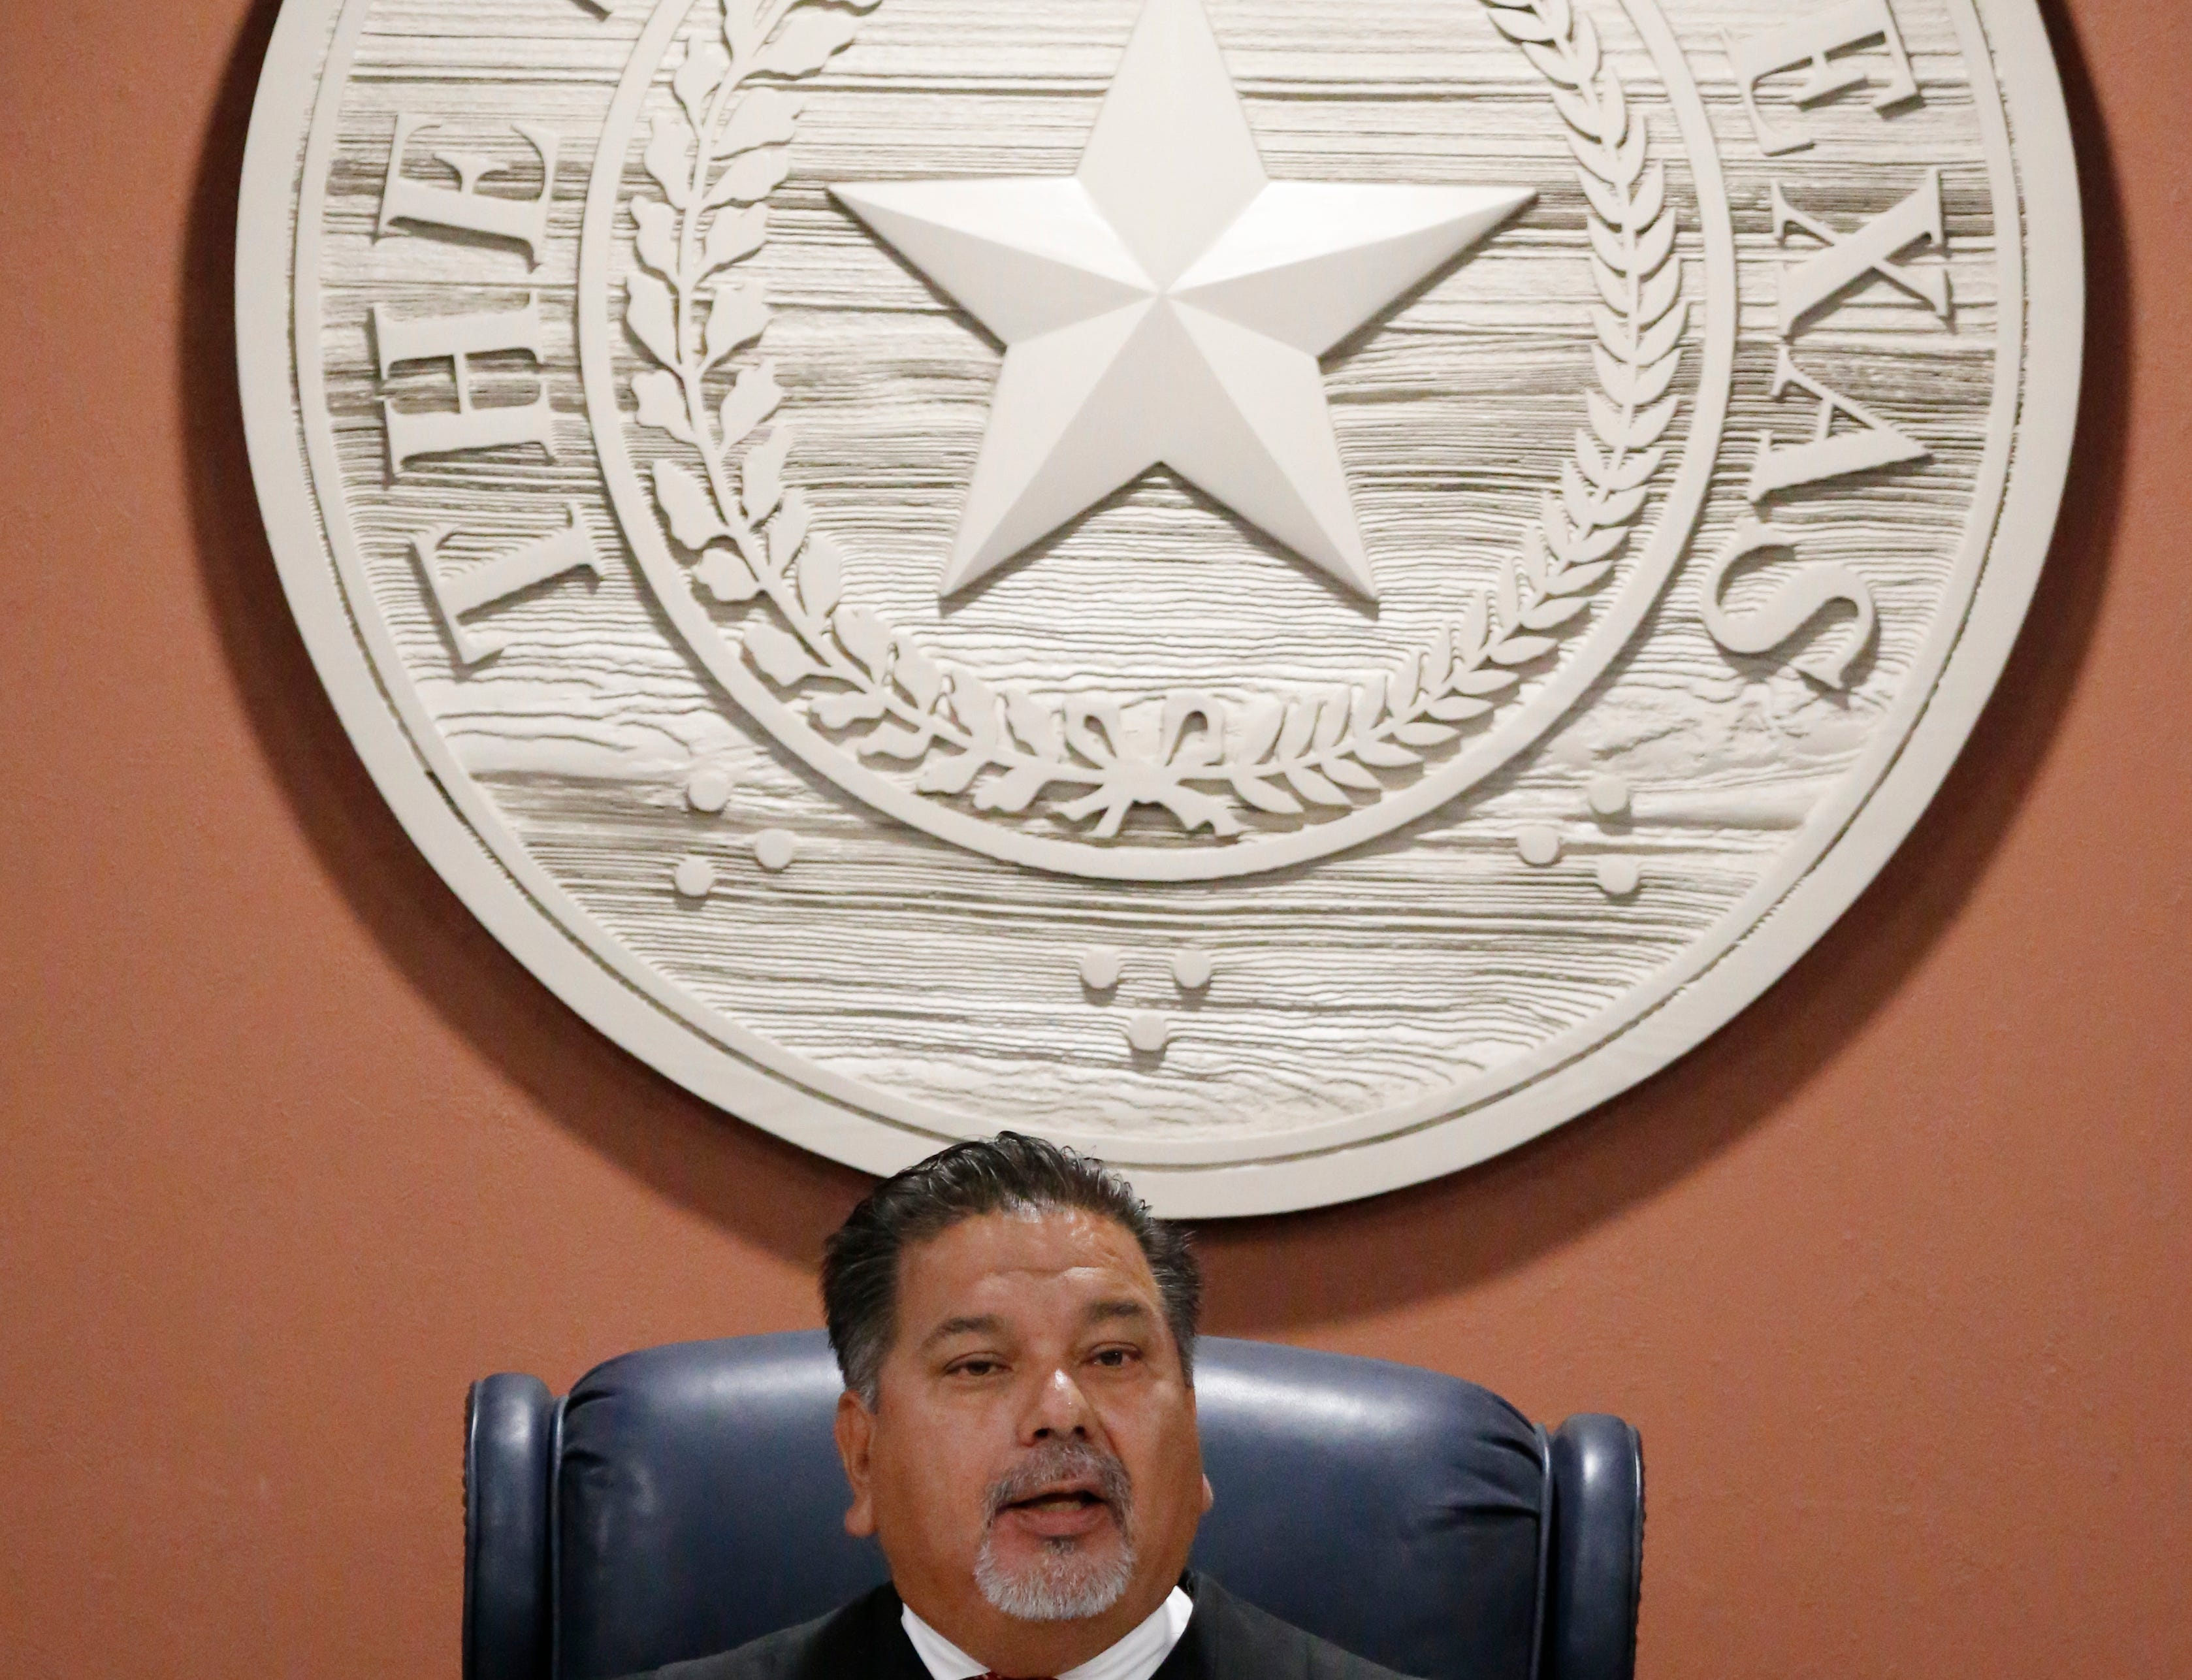 "Judge Sam Medrano, who presides over the 409th District Court, made several key rulings leading up to Villegas' third trial. Medrano ordered in 2014 that the confession Villegas gave to El Paso police could not be used in his third trial. He ruled that police violated Villegas' civil rights by threatening and intimidating him during their interrogation of him. He also threw out more than 30 jailhouse recordings including conversations between Villegas, his family, friends and local businessman John Mimbela Sr. In one recordings, Villegas tells his mother that he is tired of praying, that he is a sinner and ""not innocent,"" according to court documents. Another recording, Villegas tells a friend he ""refers to himself as a sinner,"" but explained that ""like when I was saying that I wasn't innocent, I'm talking about my innocence as far as a sinner. ... I wasn't talking about the case."" Medrano ruled that the recordings were inadmissible as evidence because they were not relevant to the case and that the statements were hearsay."